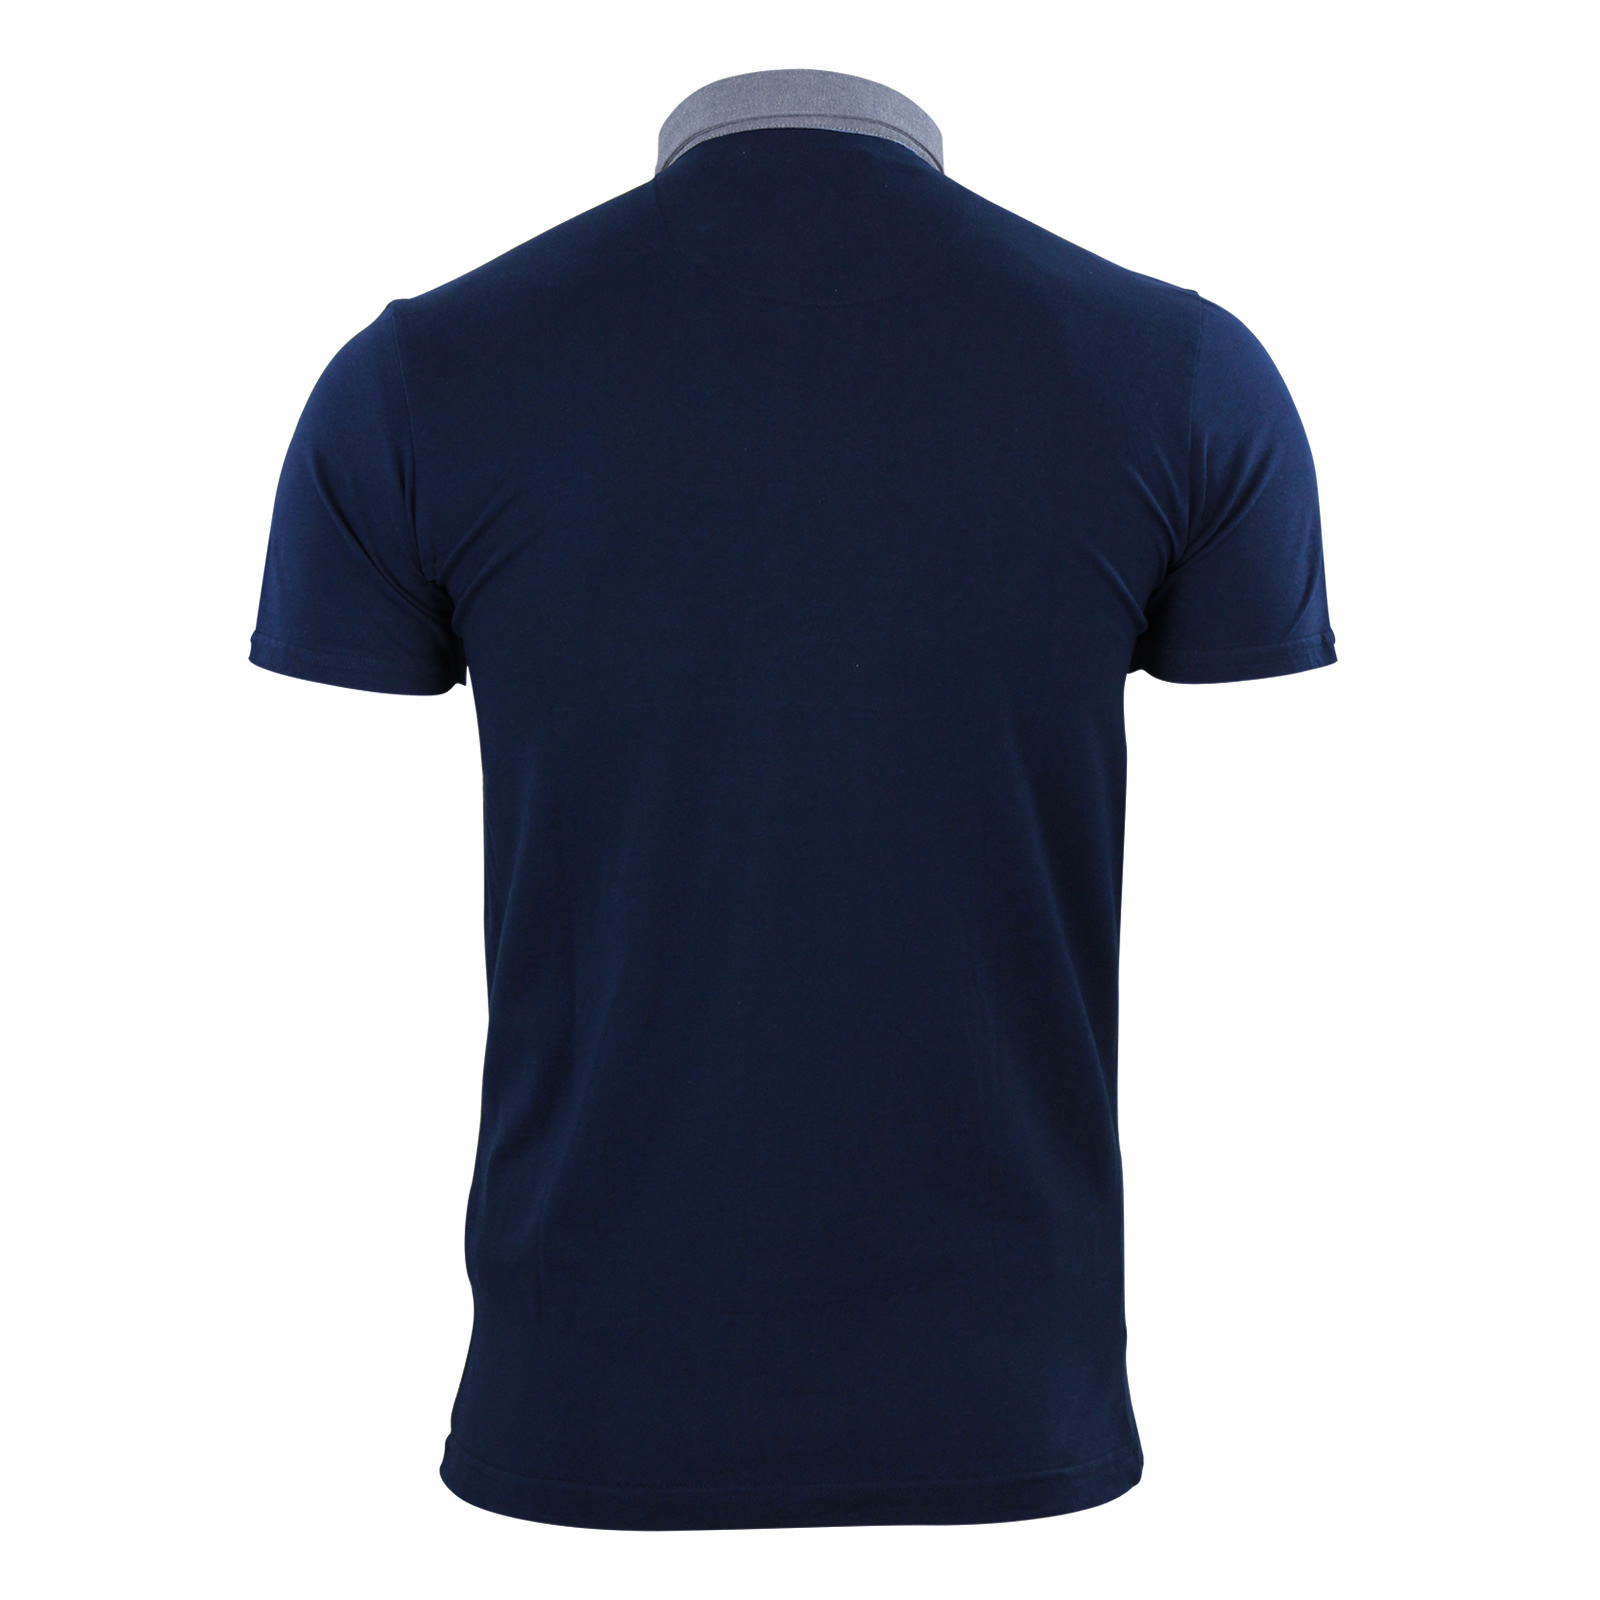 Mens-Polo-T-Shirt-Brave-Soul-Chimera-Chambray-Collared-Cotton-Casual-Top thumbnail 6